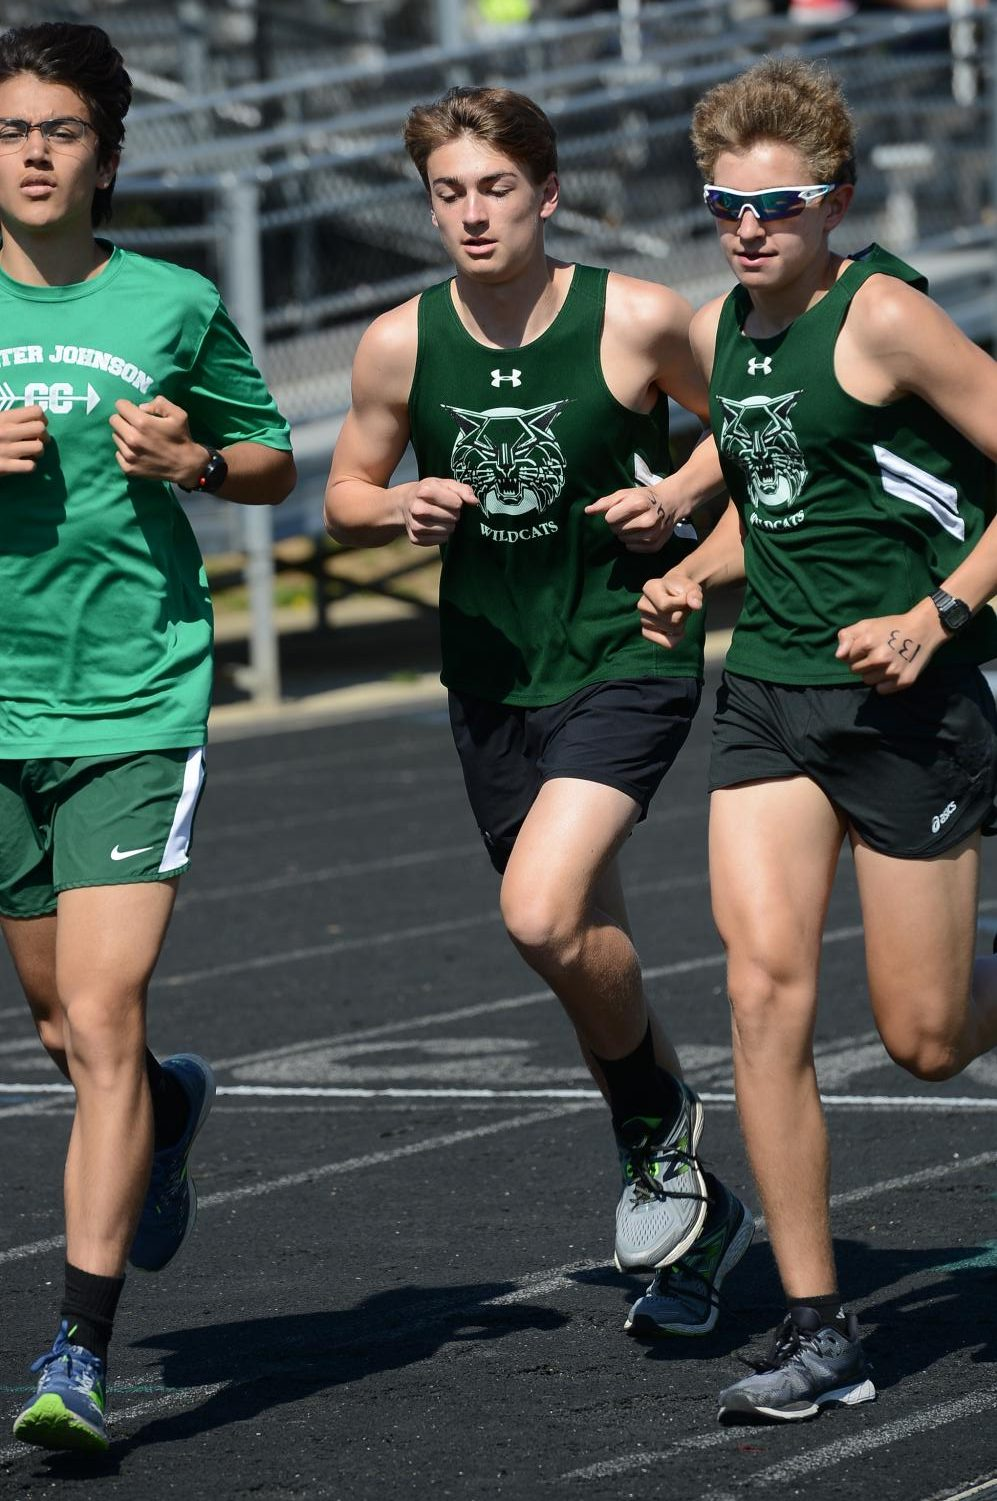 Senior Rodrigo Yepez-Lopez, sophomore Alex Scott and junior Jake Marks (pictured left to right) accelerate through a turn. This trio has led the boys team to a characteristically strong start to the season.